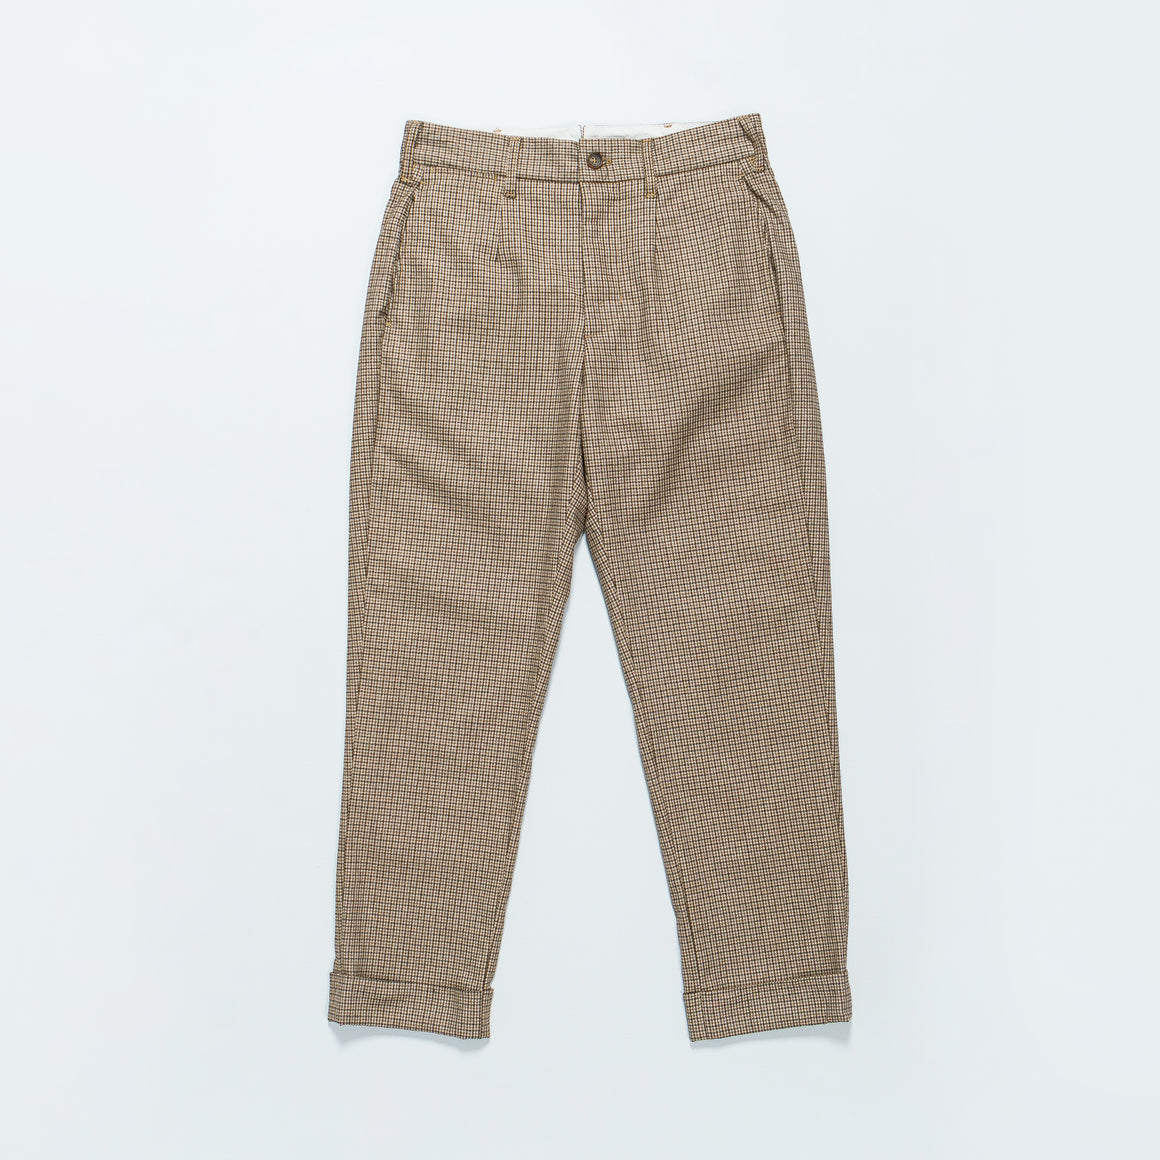 Engineered Garments - Andover Pant - Brown Wool Poly Gunclub Check - Up There